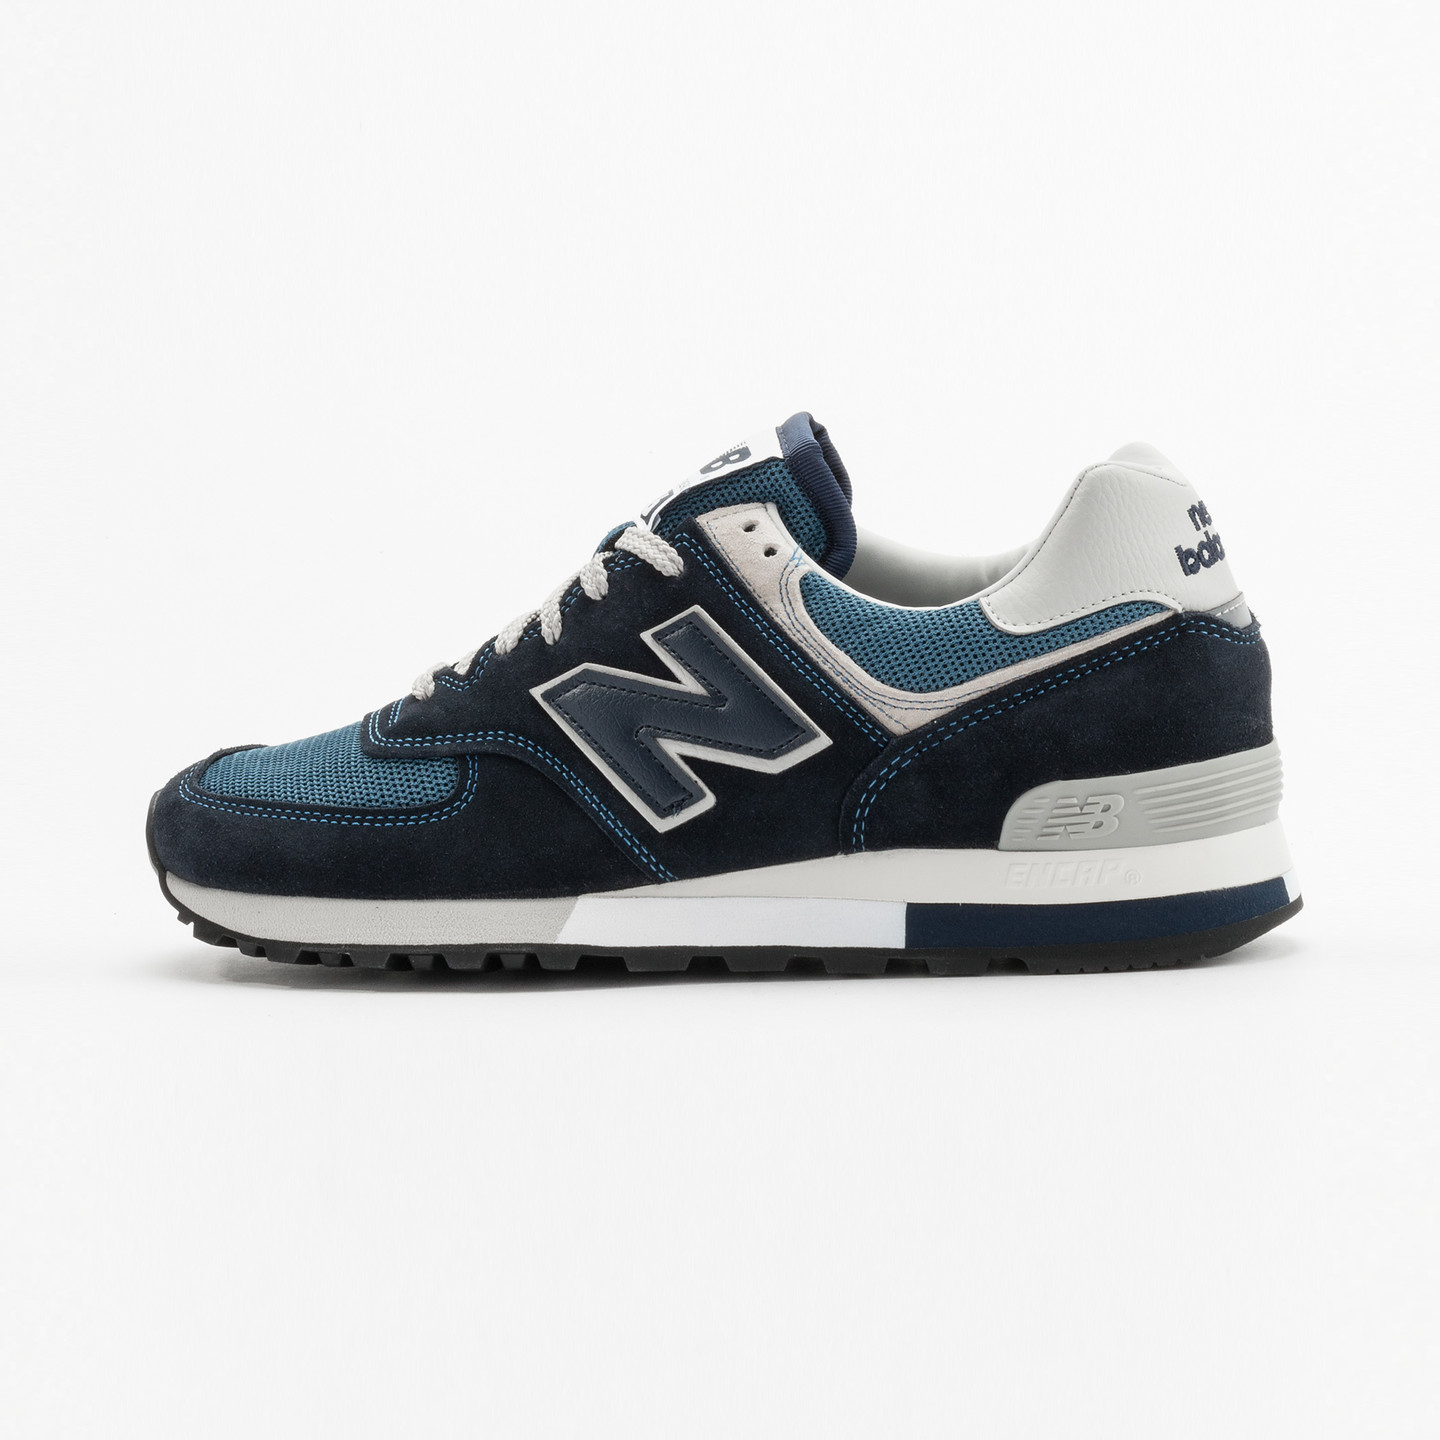 New Balance M576 OGN - Made in England Navy / Grey M576OGN